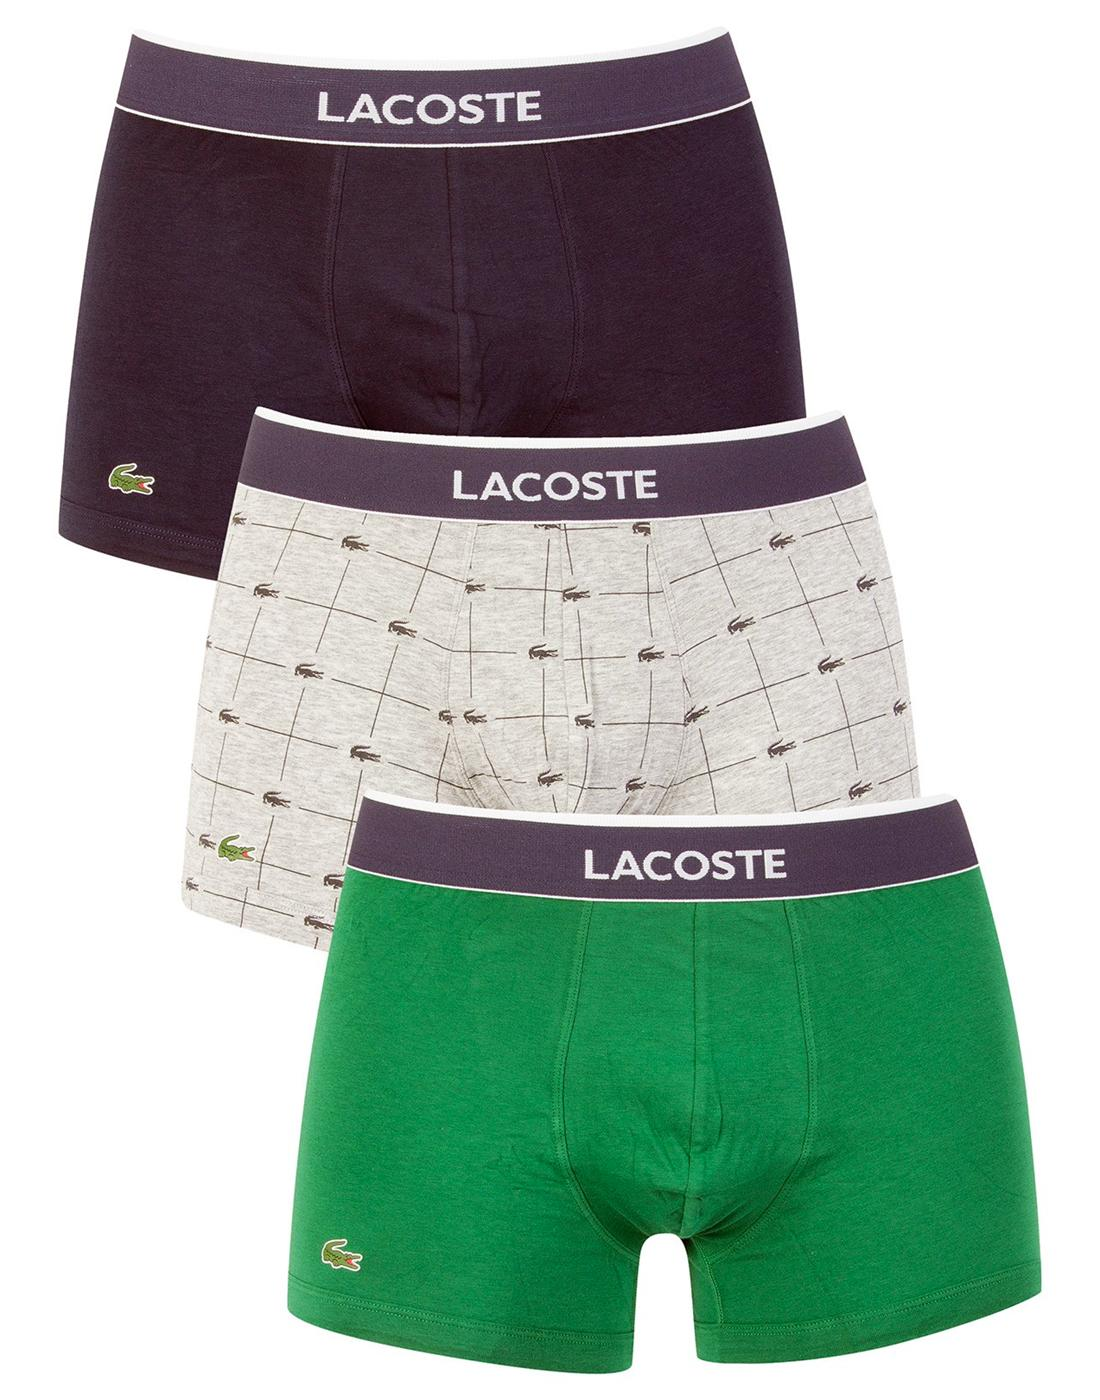 + LACOSTE Mens 3 Pack Colours Retro Trunks - N/G/G